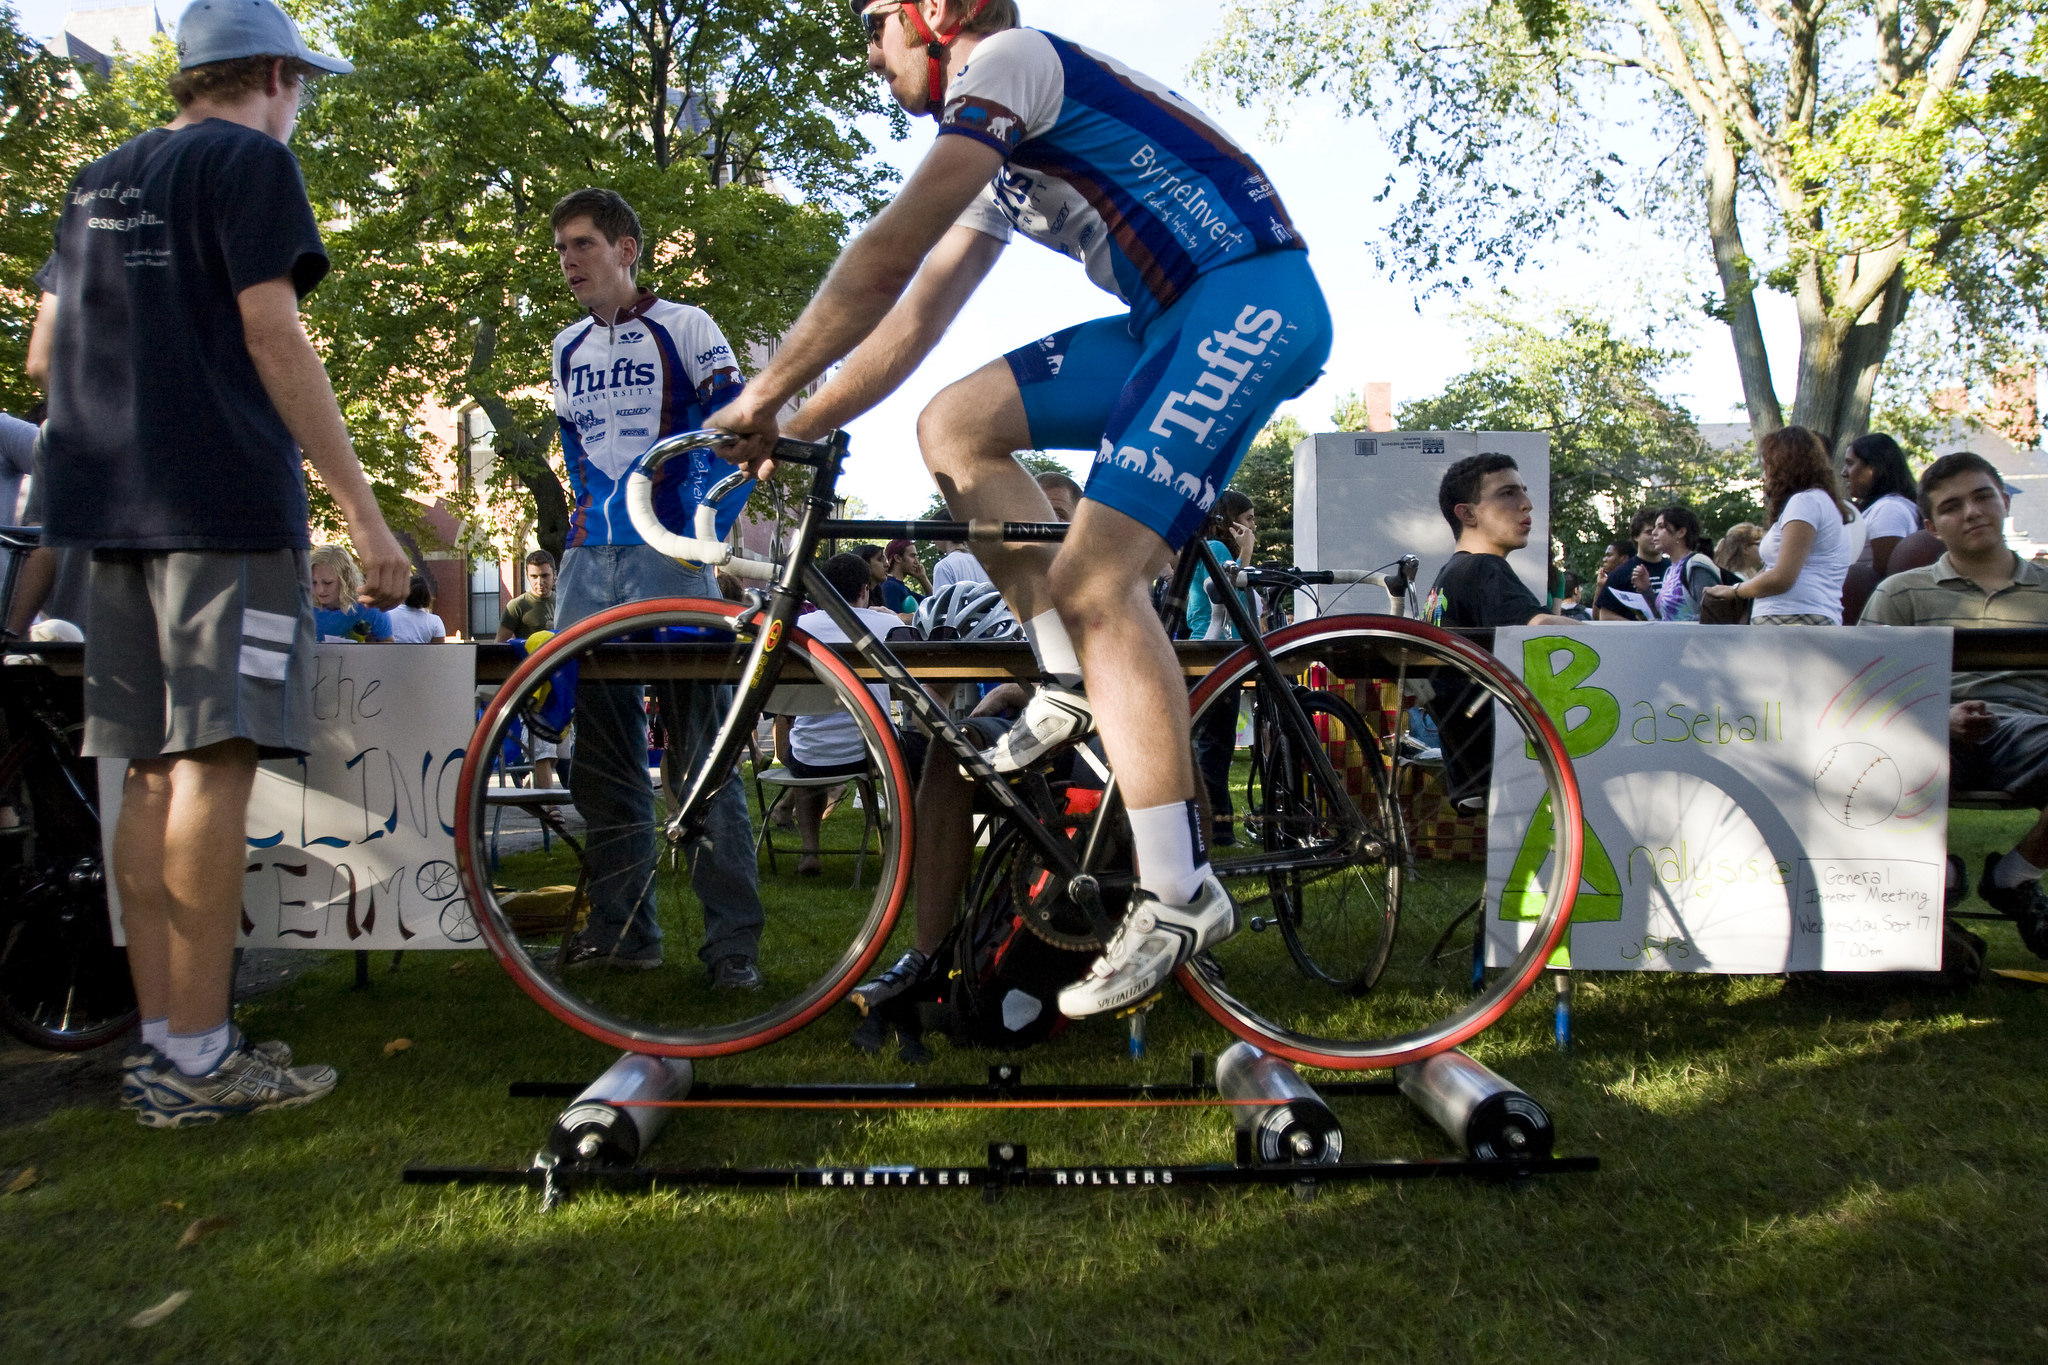 Join the 2016 Tufts Century Ride